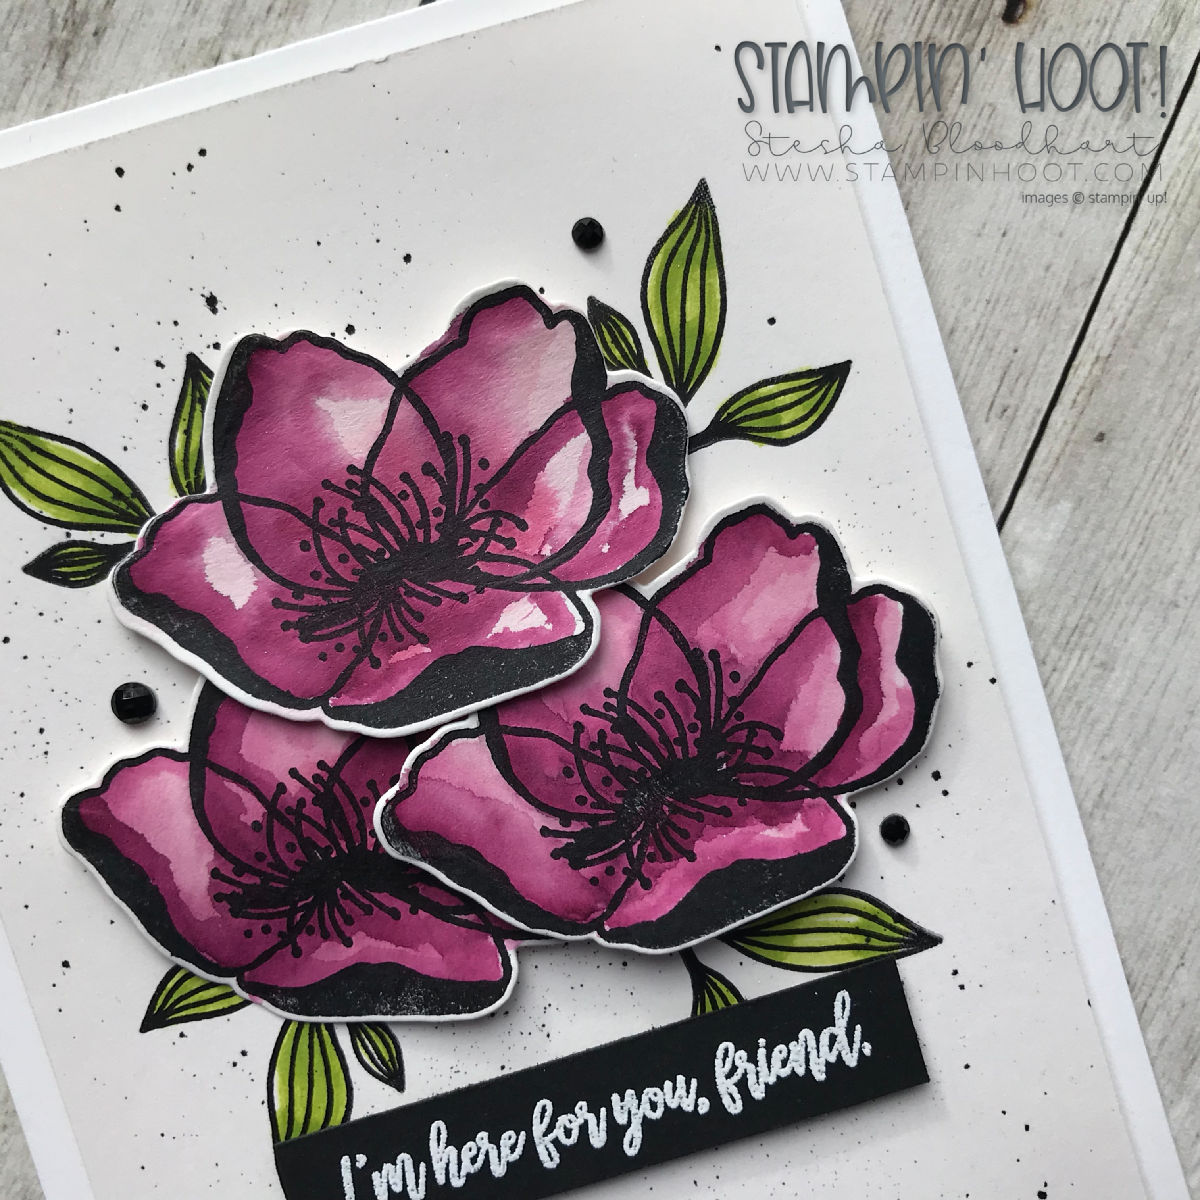 Beautiful Promenade Bundle by Stampin' Up! Sympathy Friend Card created by Stesha bloodhart, Stampin' Hoot! #tgifc185 #steshabloodhart #stampinhoot